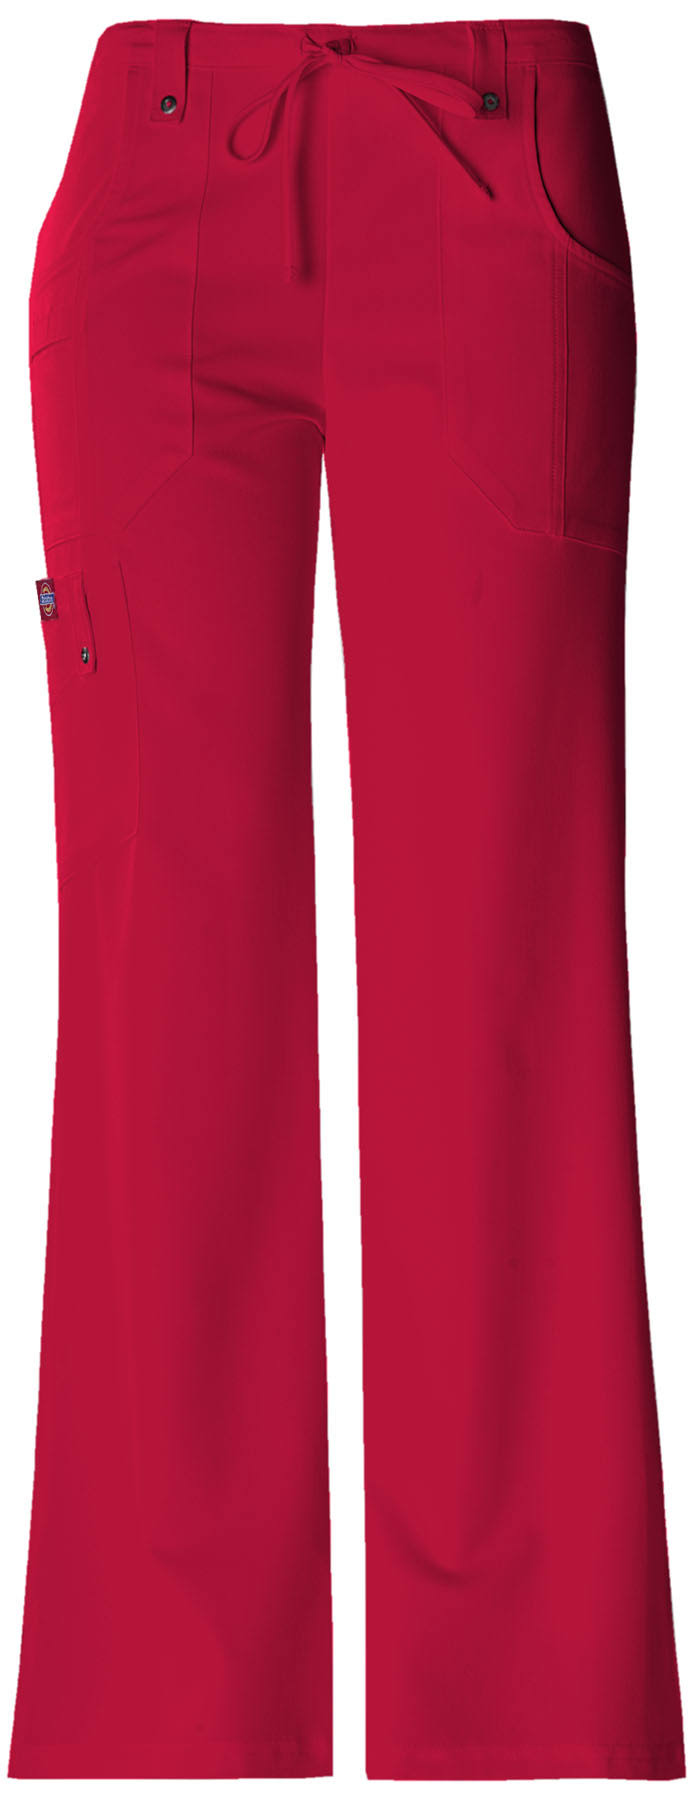 Dickies Women's Xtreme Stretch Tall Drawstring Scrub Pant - L - Red